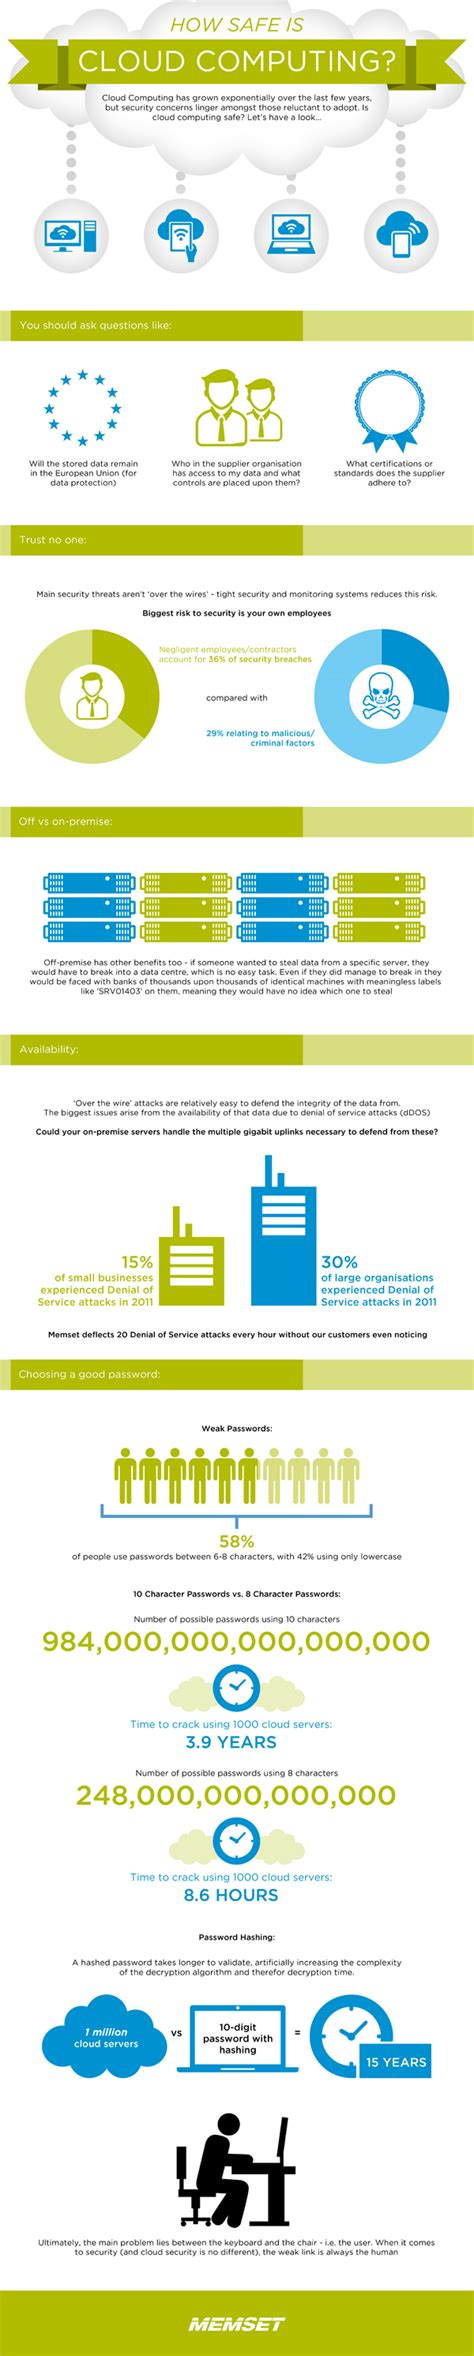 cloud computing infographic how safe is cloud computing infographic kate s comment